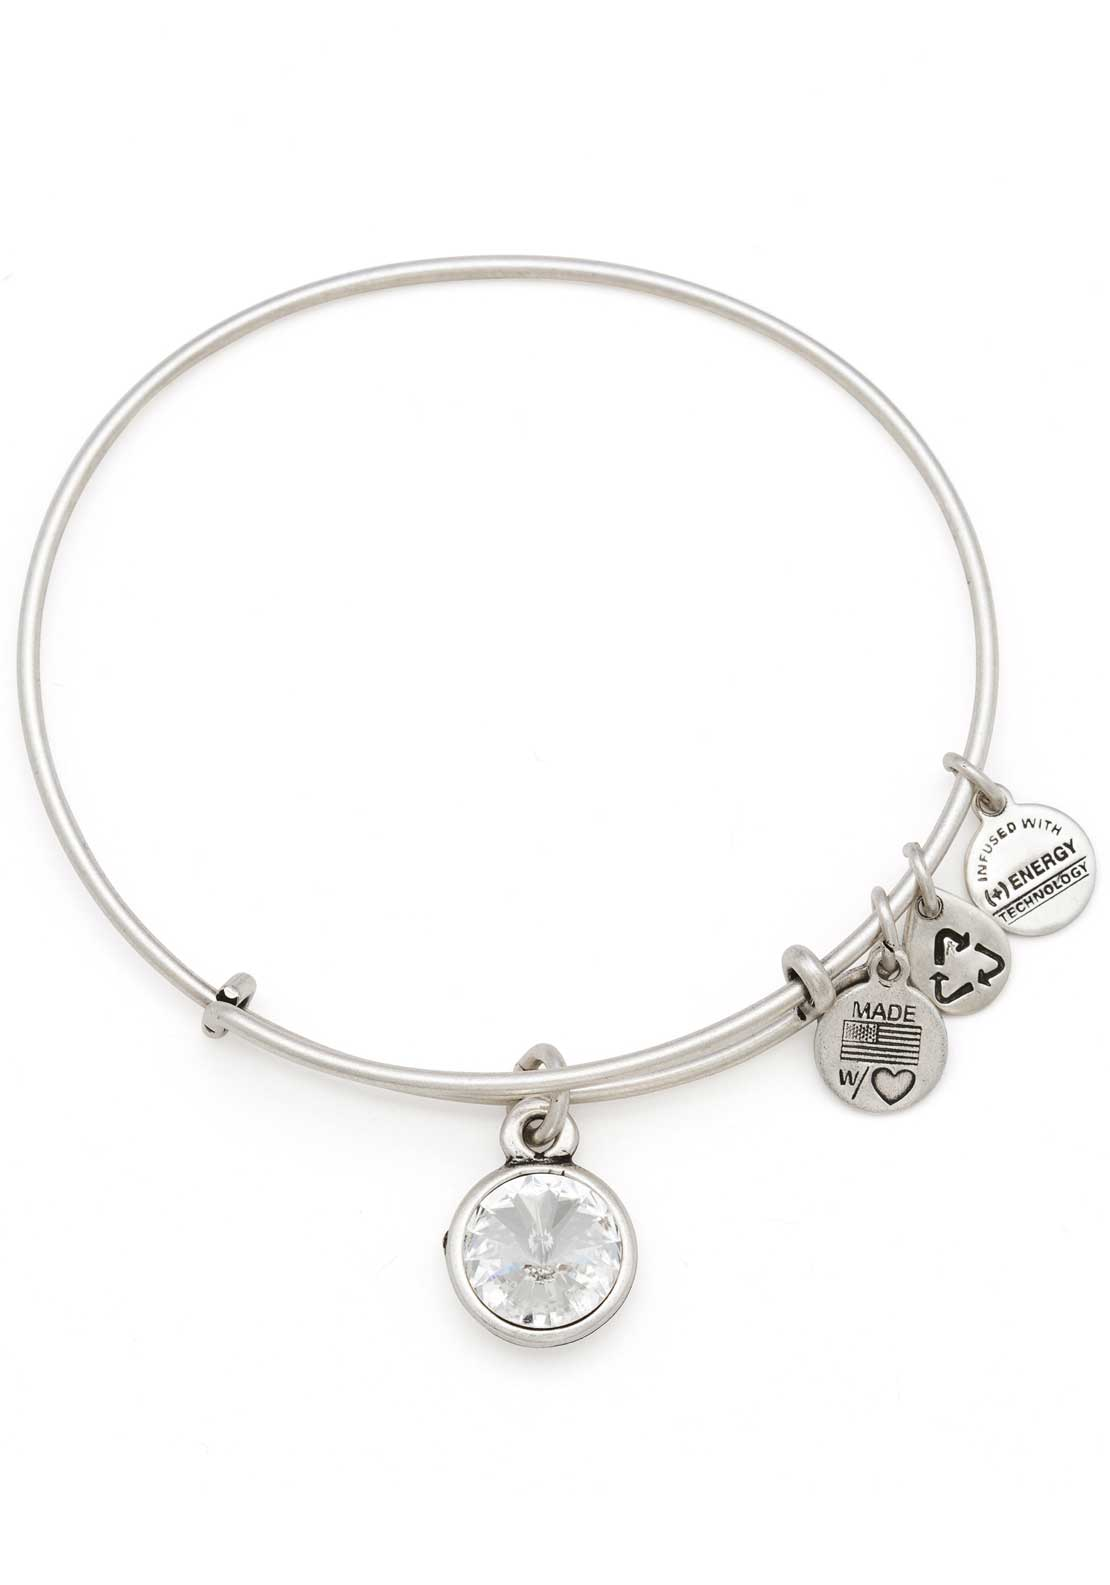 Alex and Ani (+) Energy April Birthstone Crystal Bracelet, Silver